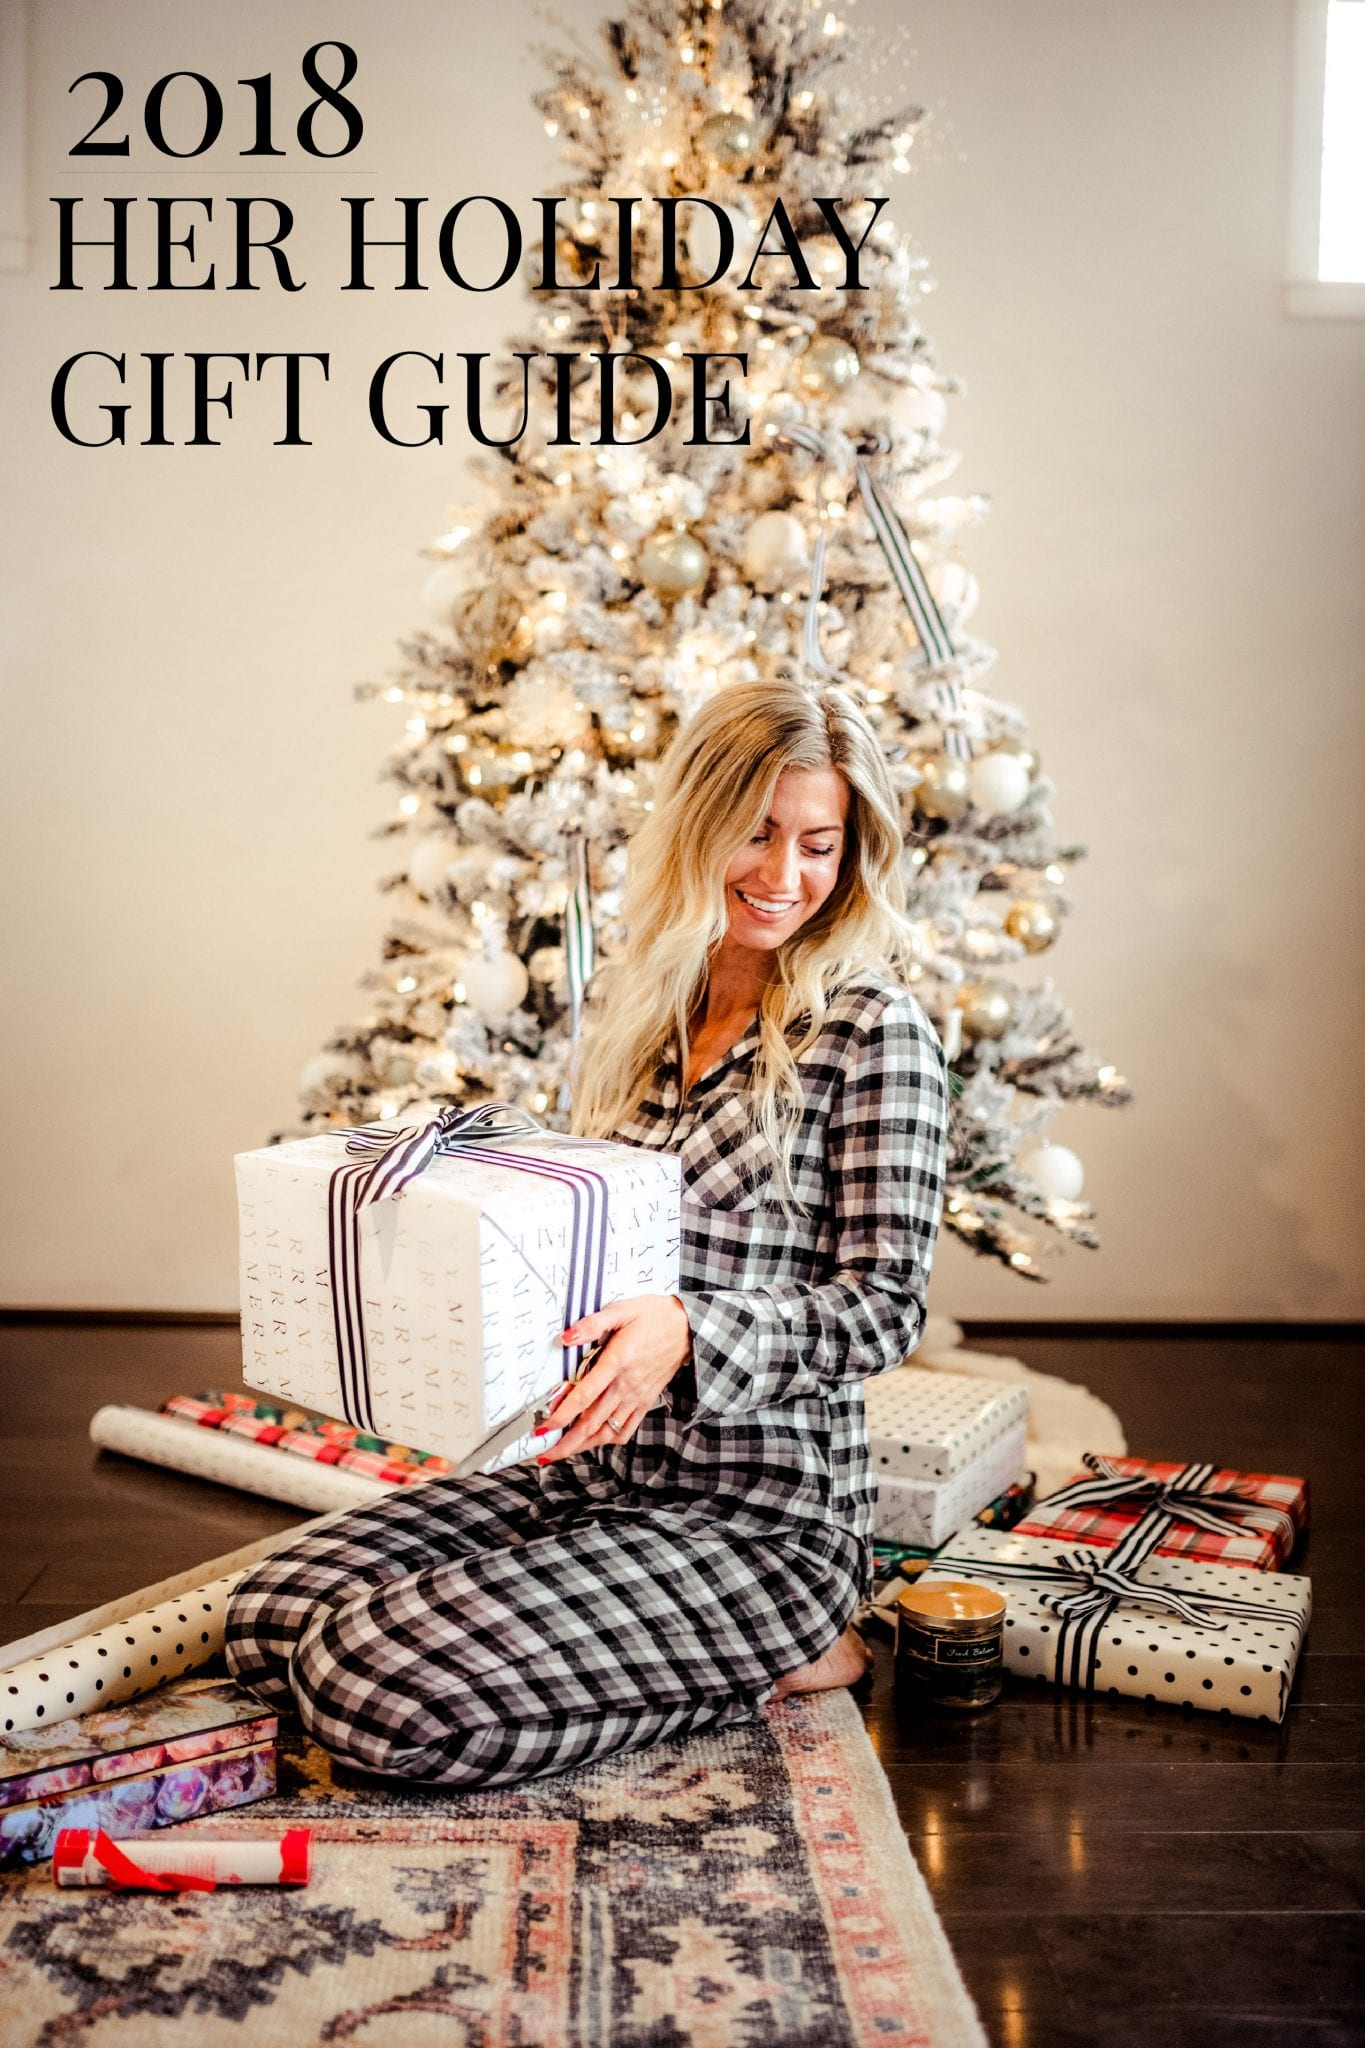 Holiday 2018 Gift Guide for her